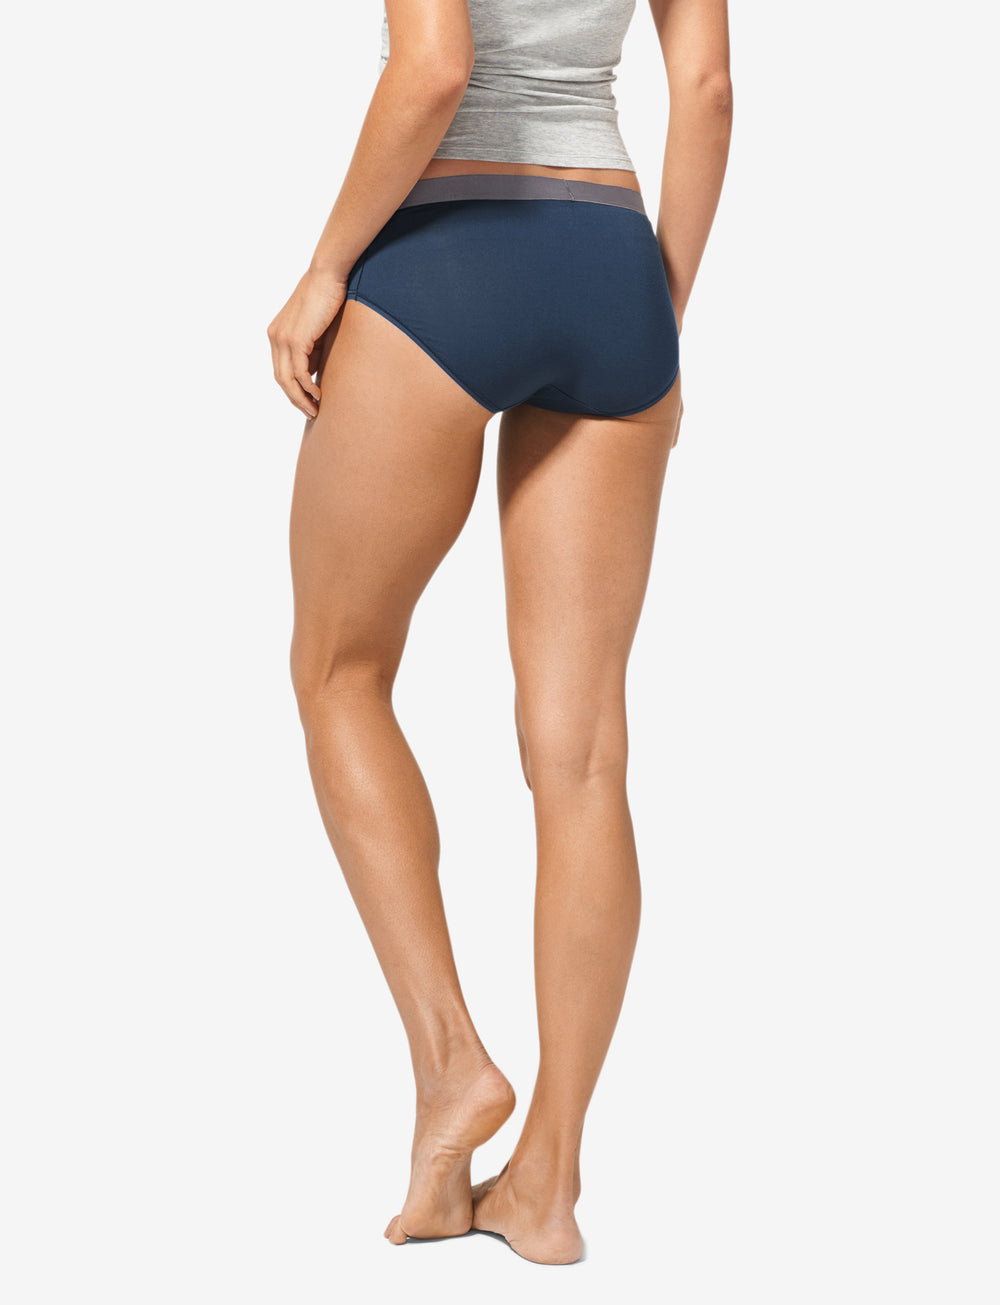 Women's Second Skin Titanium Waistband Brief Details Image